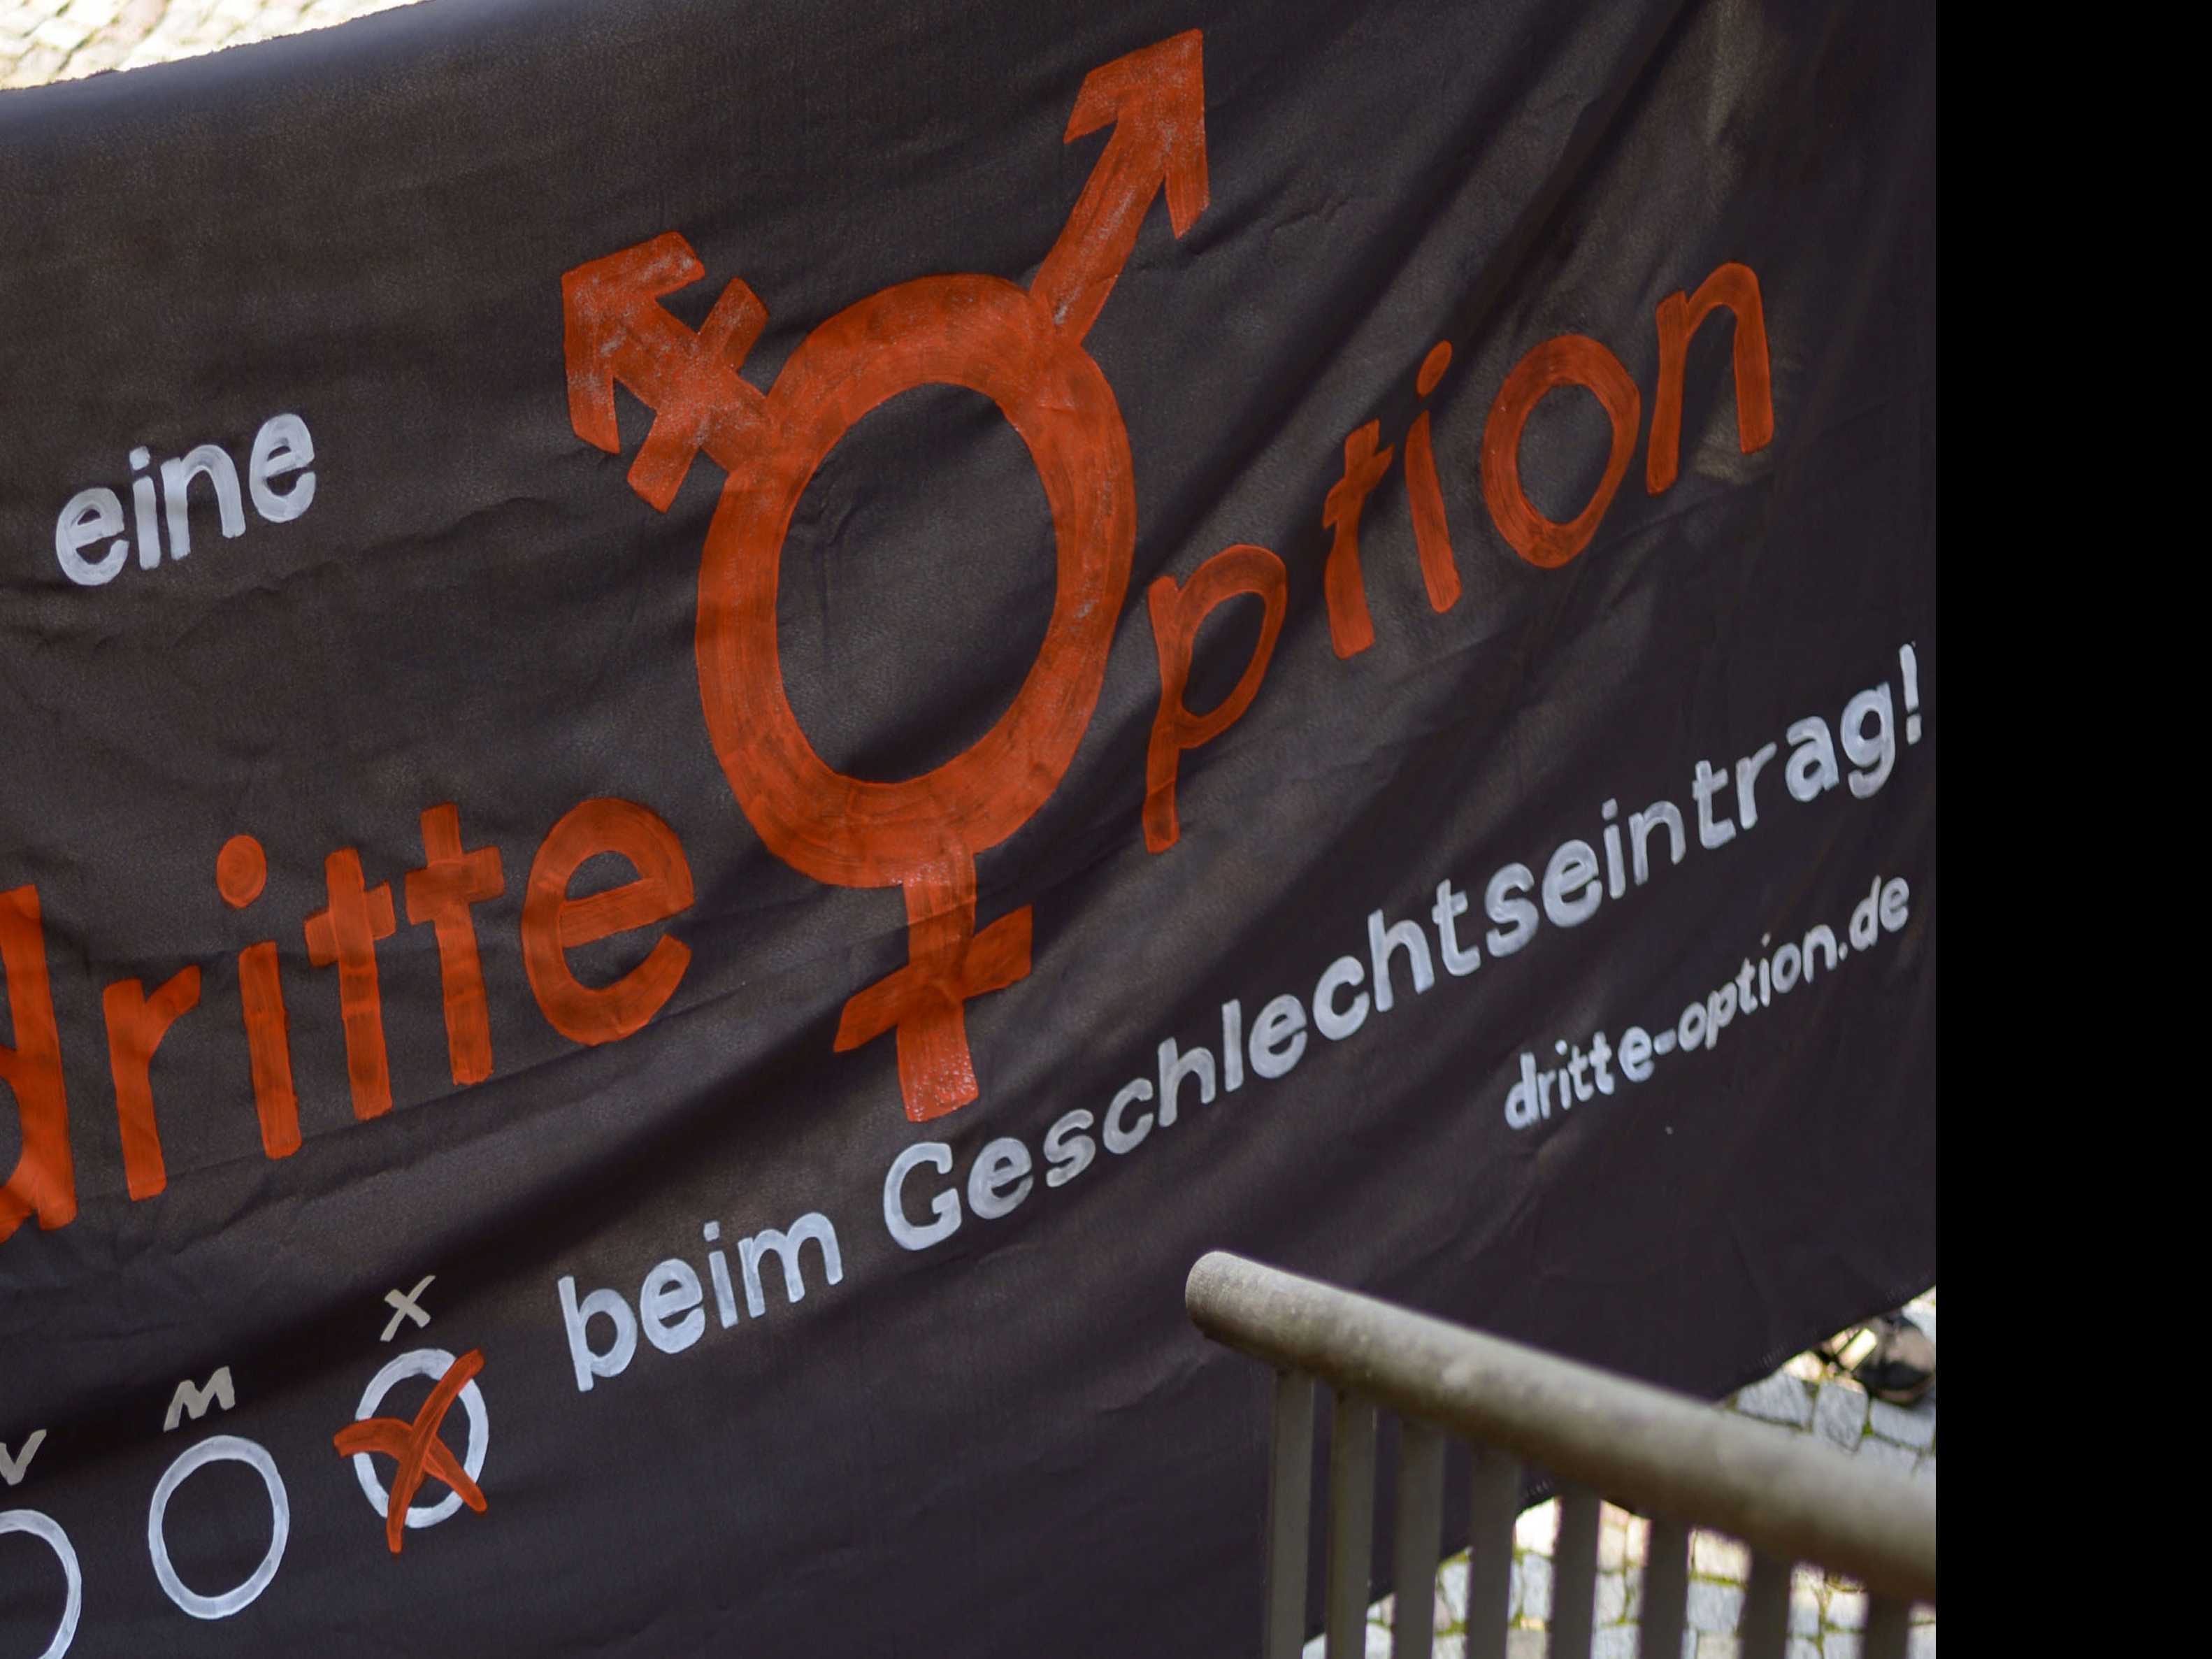 Germany Creates 3rd Gender Identity for Records: 'Diverse'